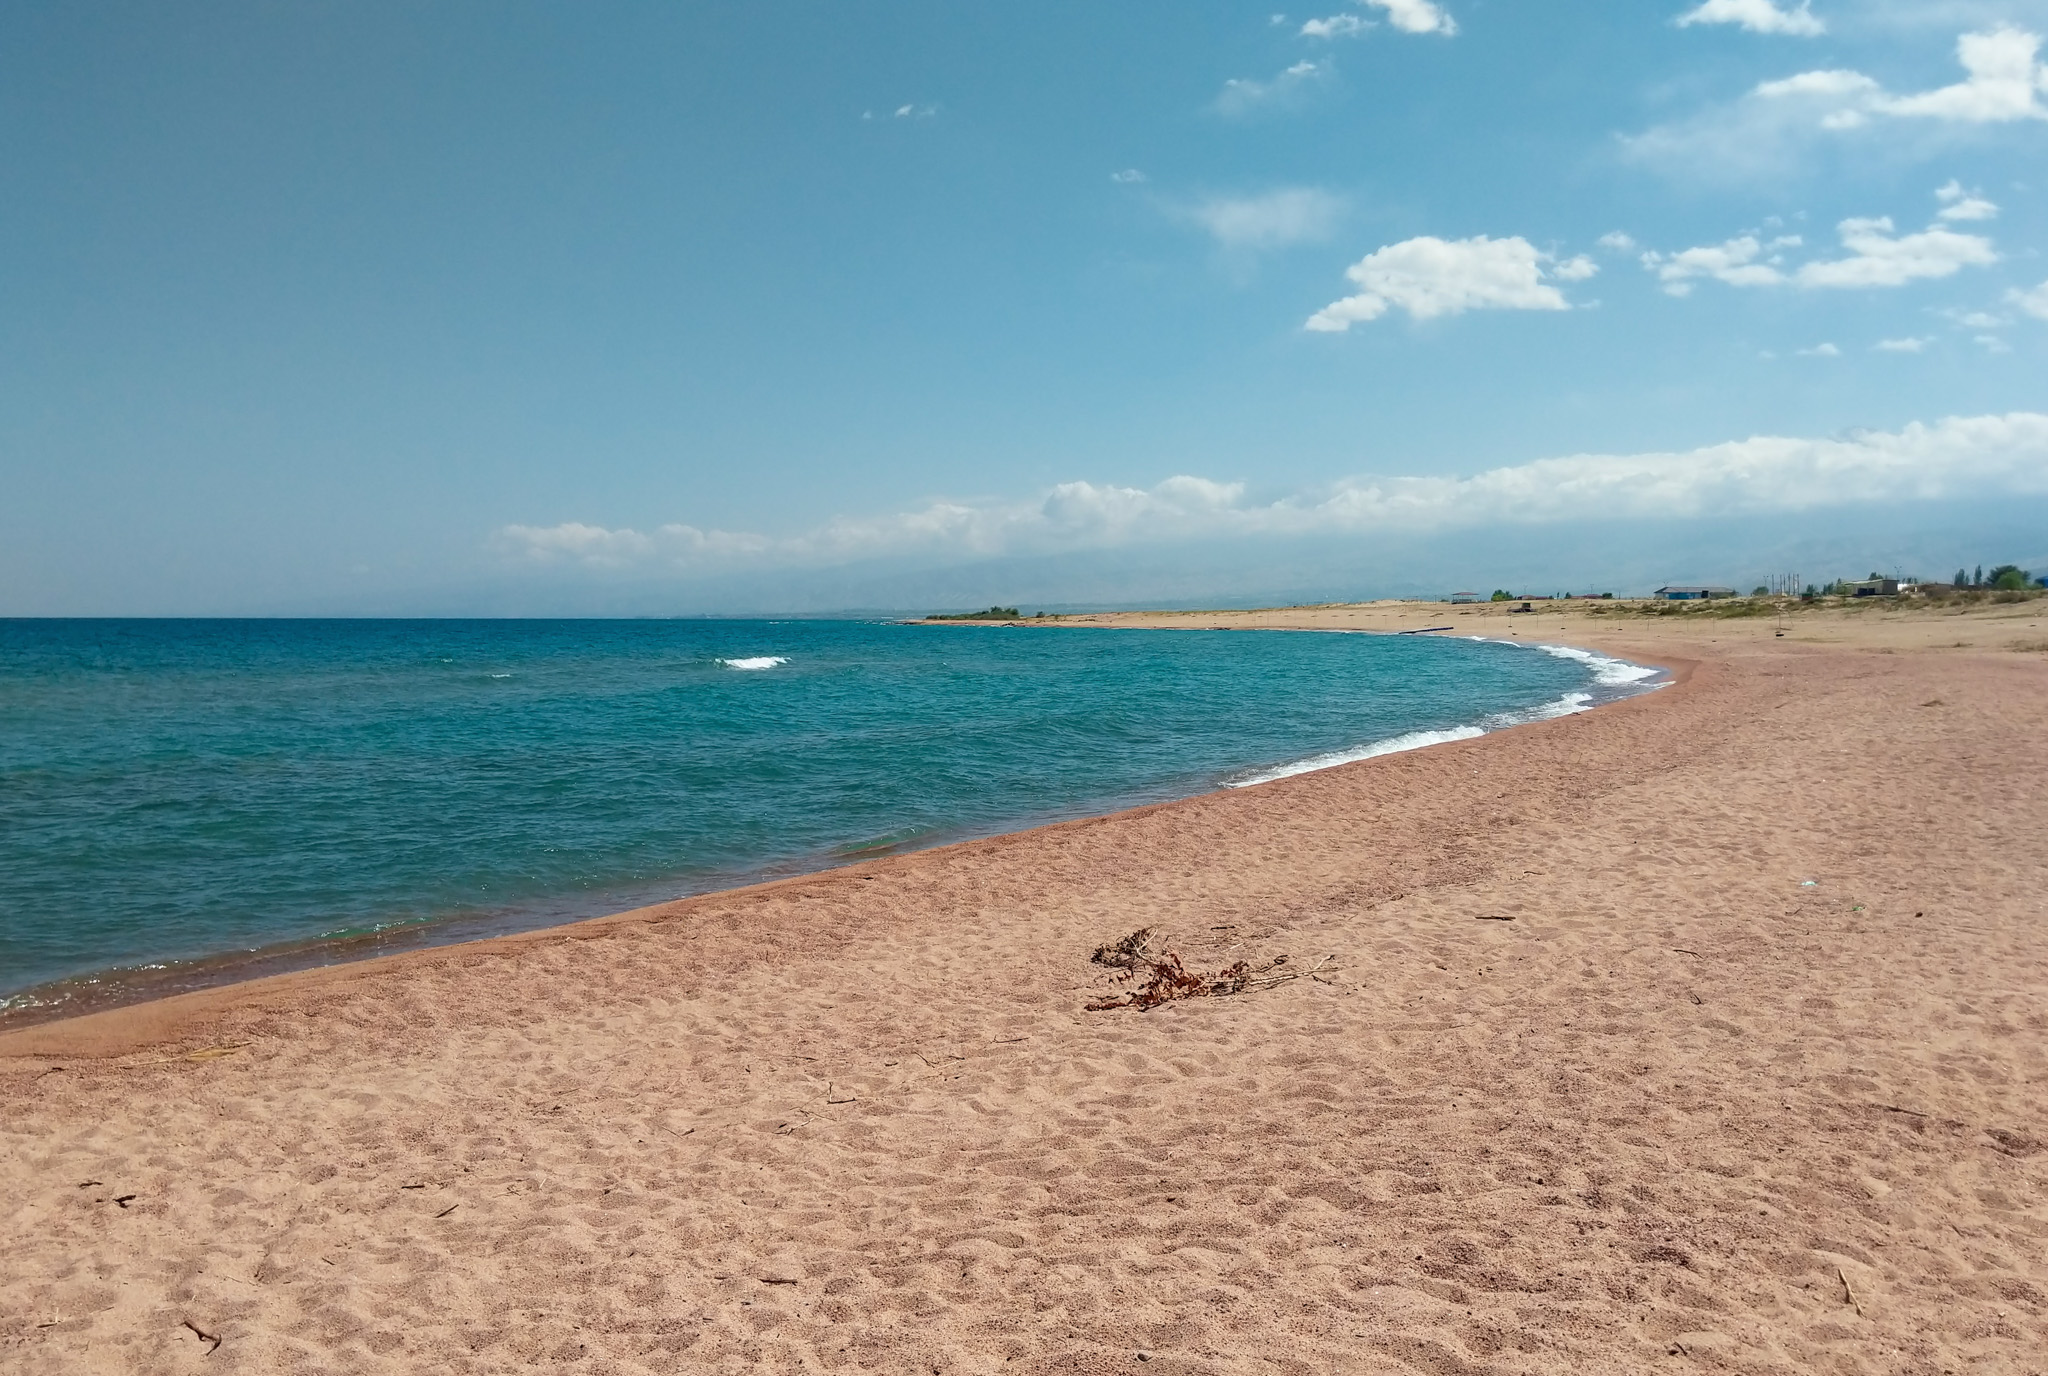 Consider a visit to Issyk-Kul's beaches if you're in Kyrgyzstan in the summer!